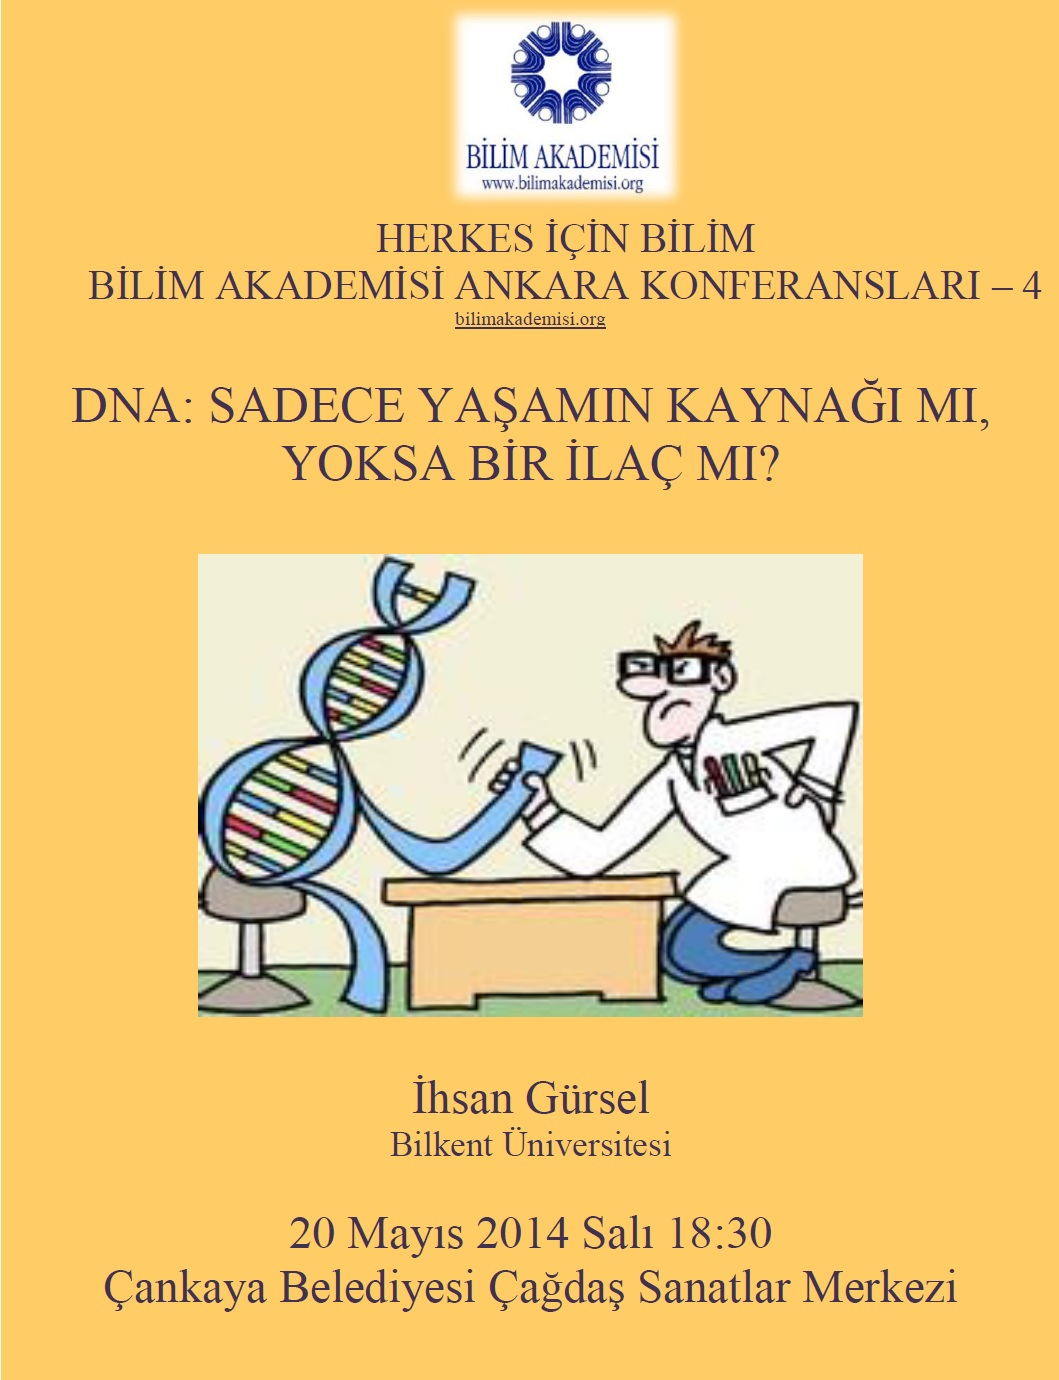 DNA: The Origin of Life, or Medication? – Speaker: İhsan Gürsel